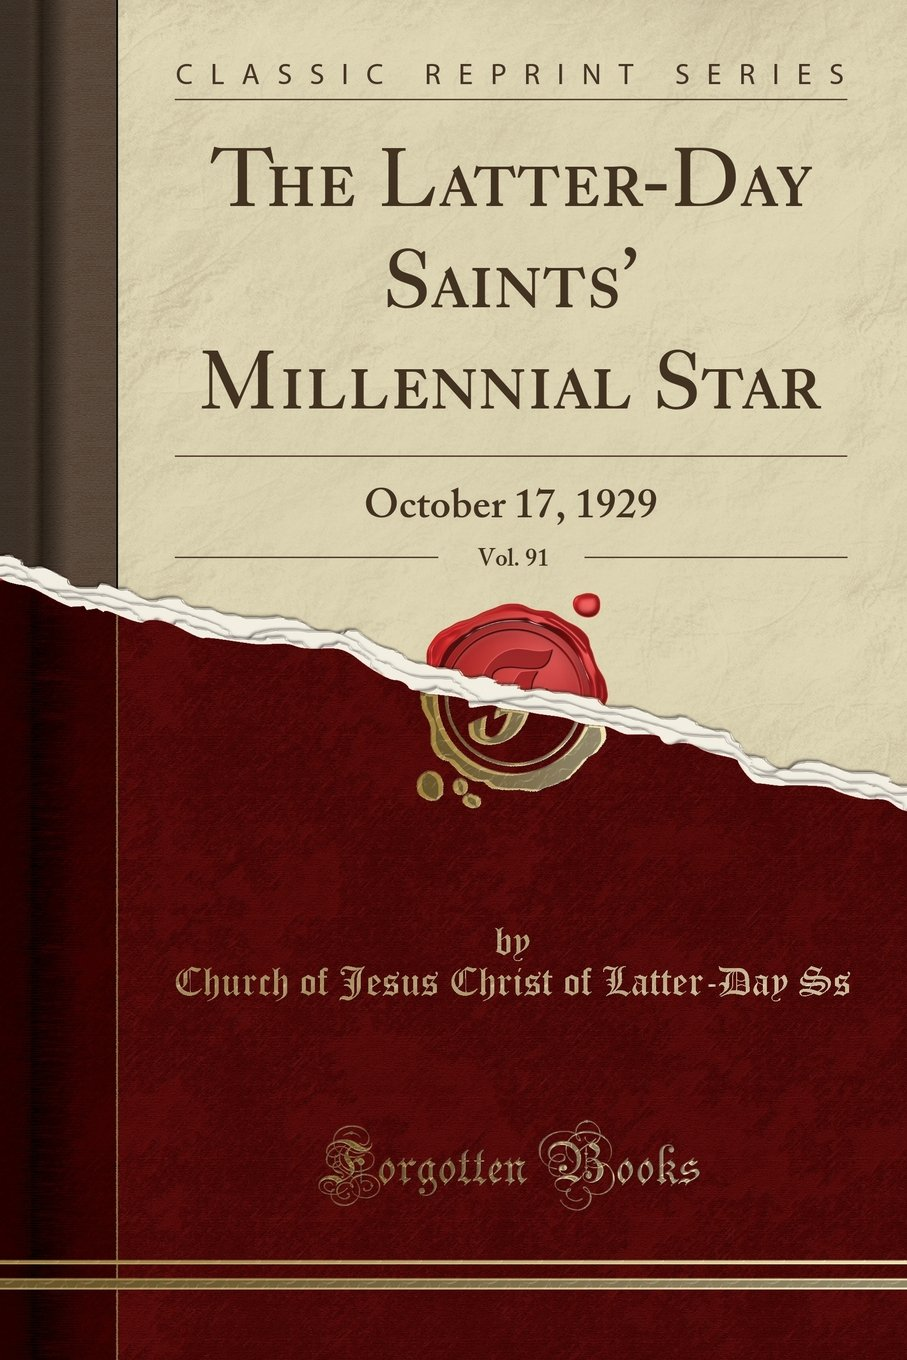 The Latter-Day Saints' Millennial Star, Vol. 91: October 17, 1929 (Classic Reprint) pdf